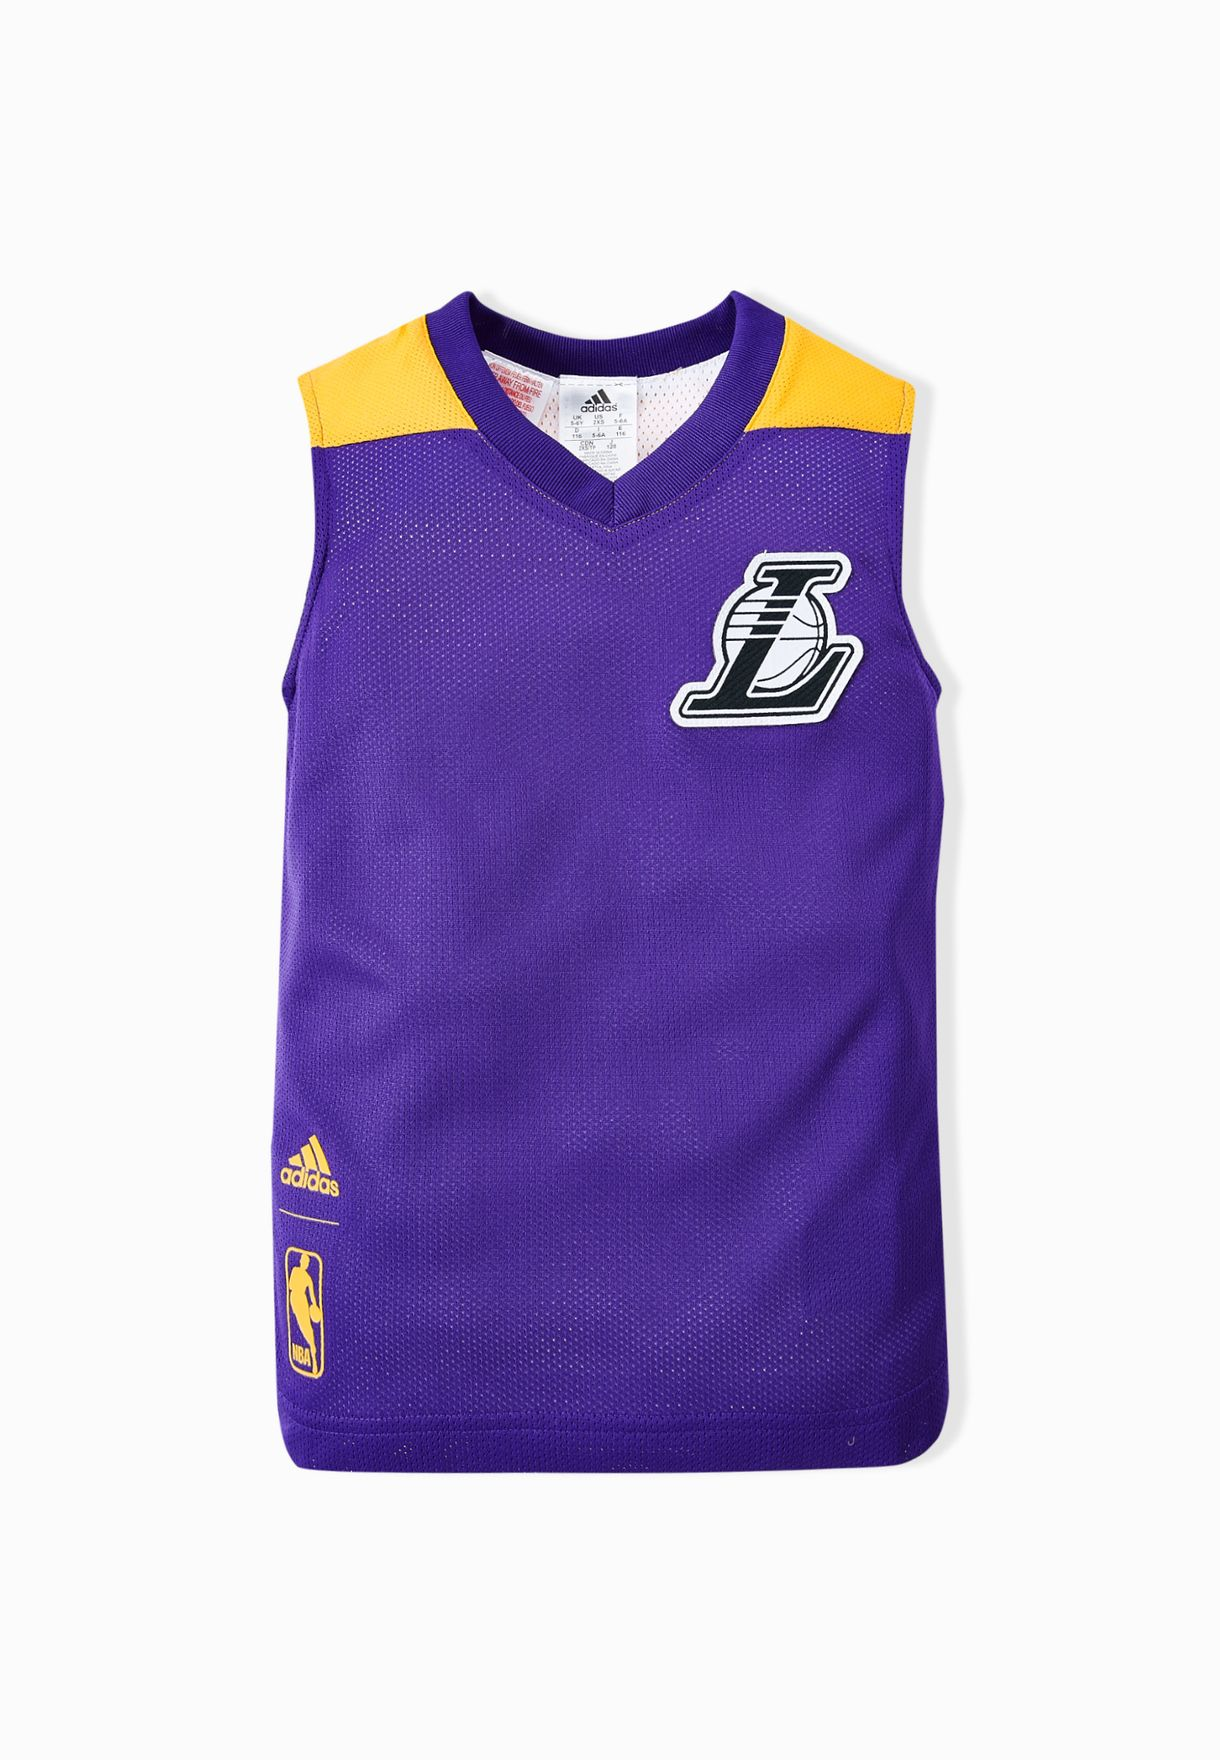 0dd75af1 Shop adidas multicolor Youth Reversible LA Lakers Vest AO2167 for ...